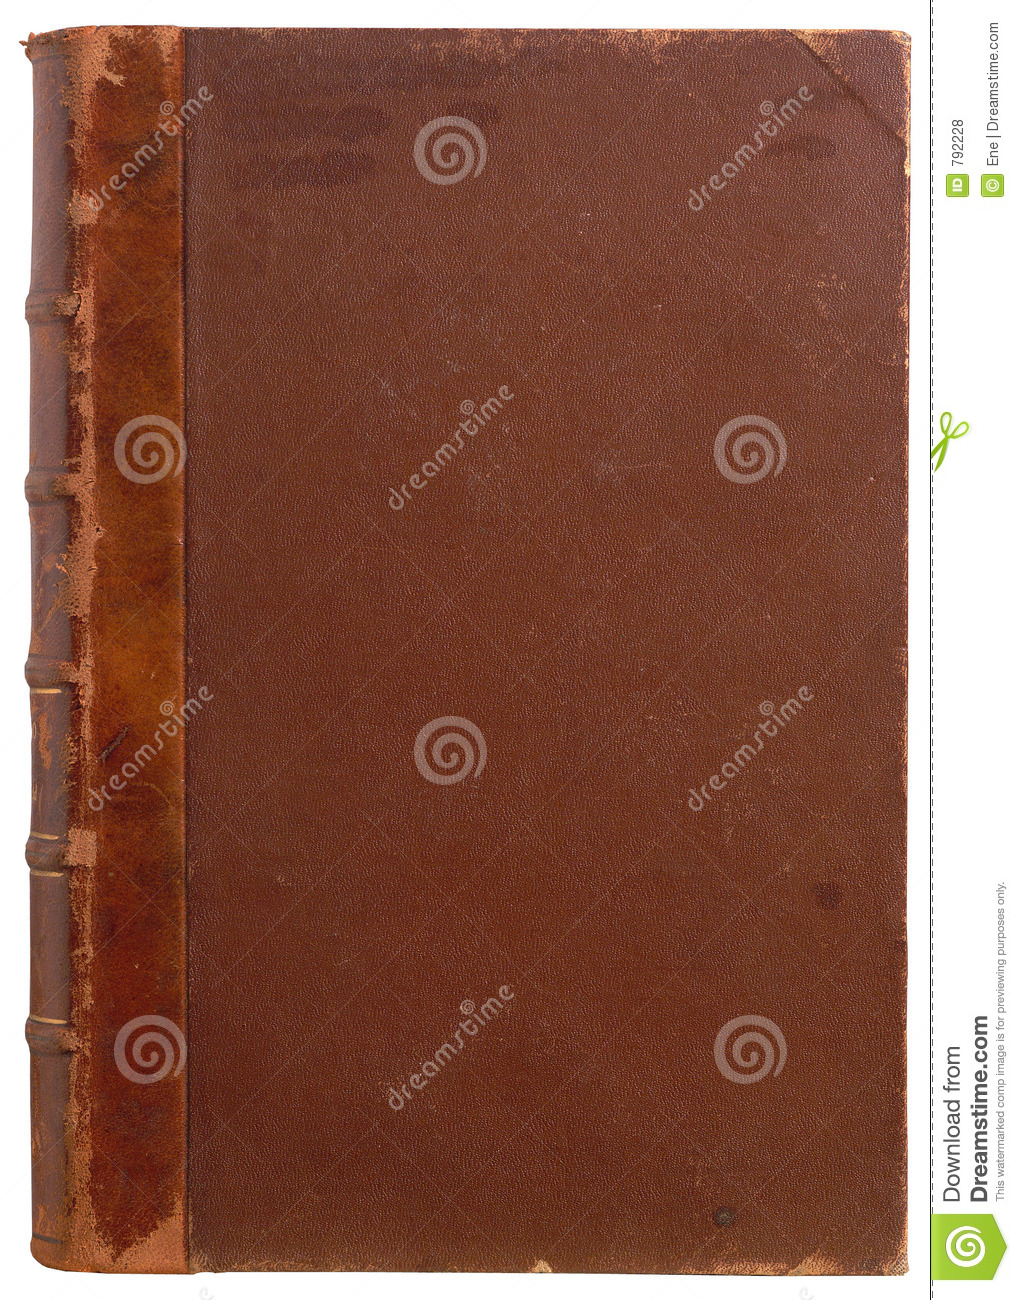 Book cover stock photo. Image of cover, element, read ...